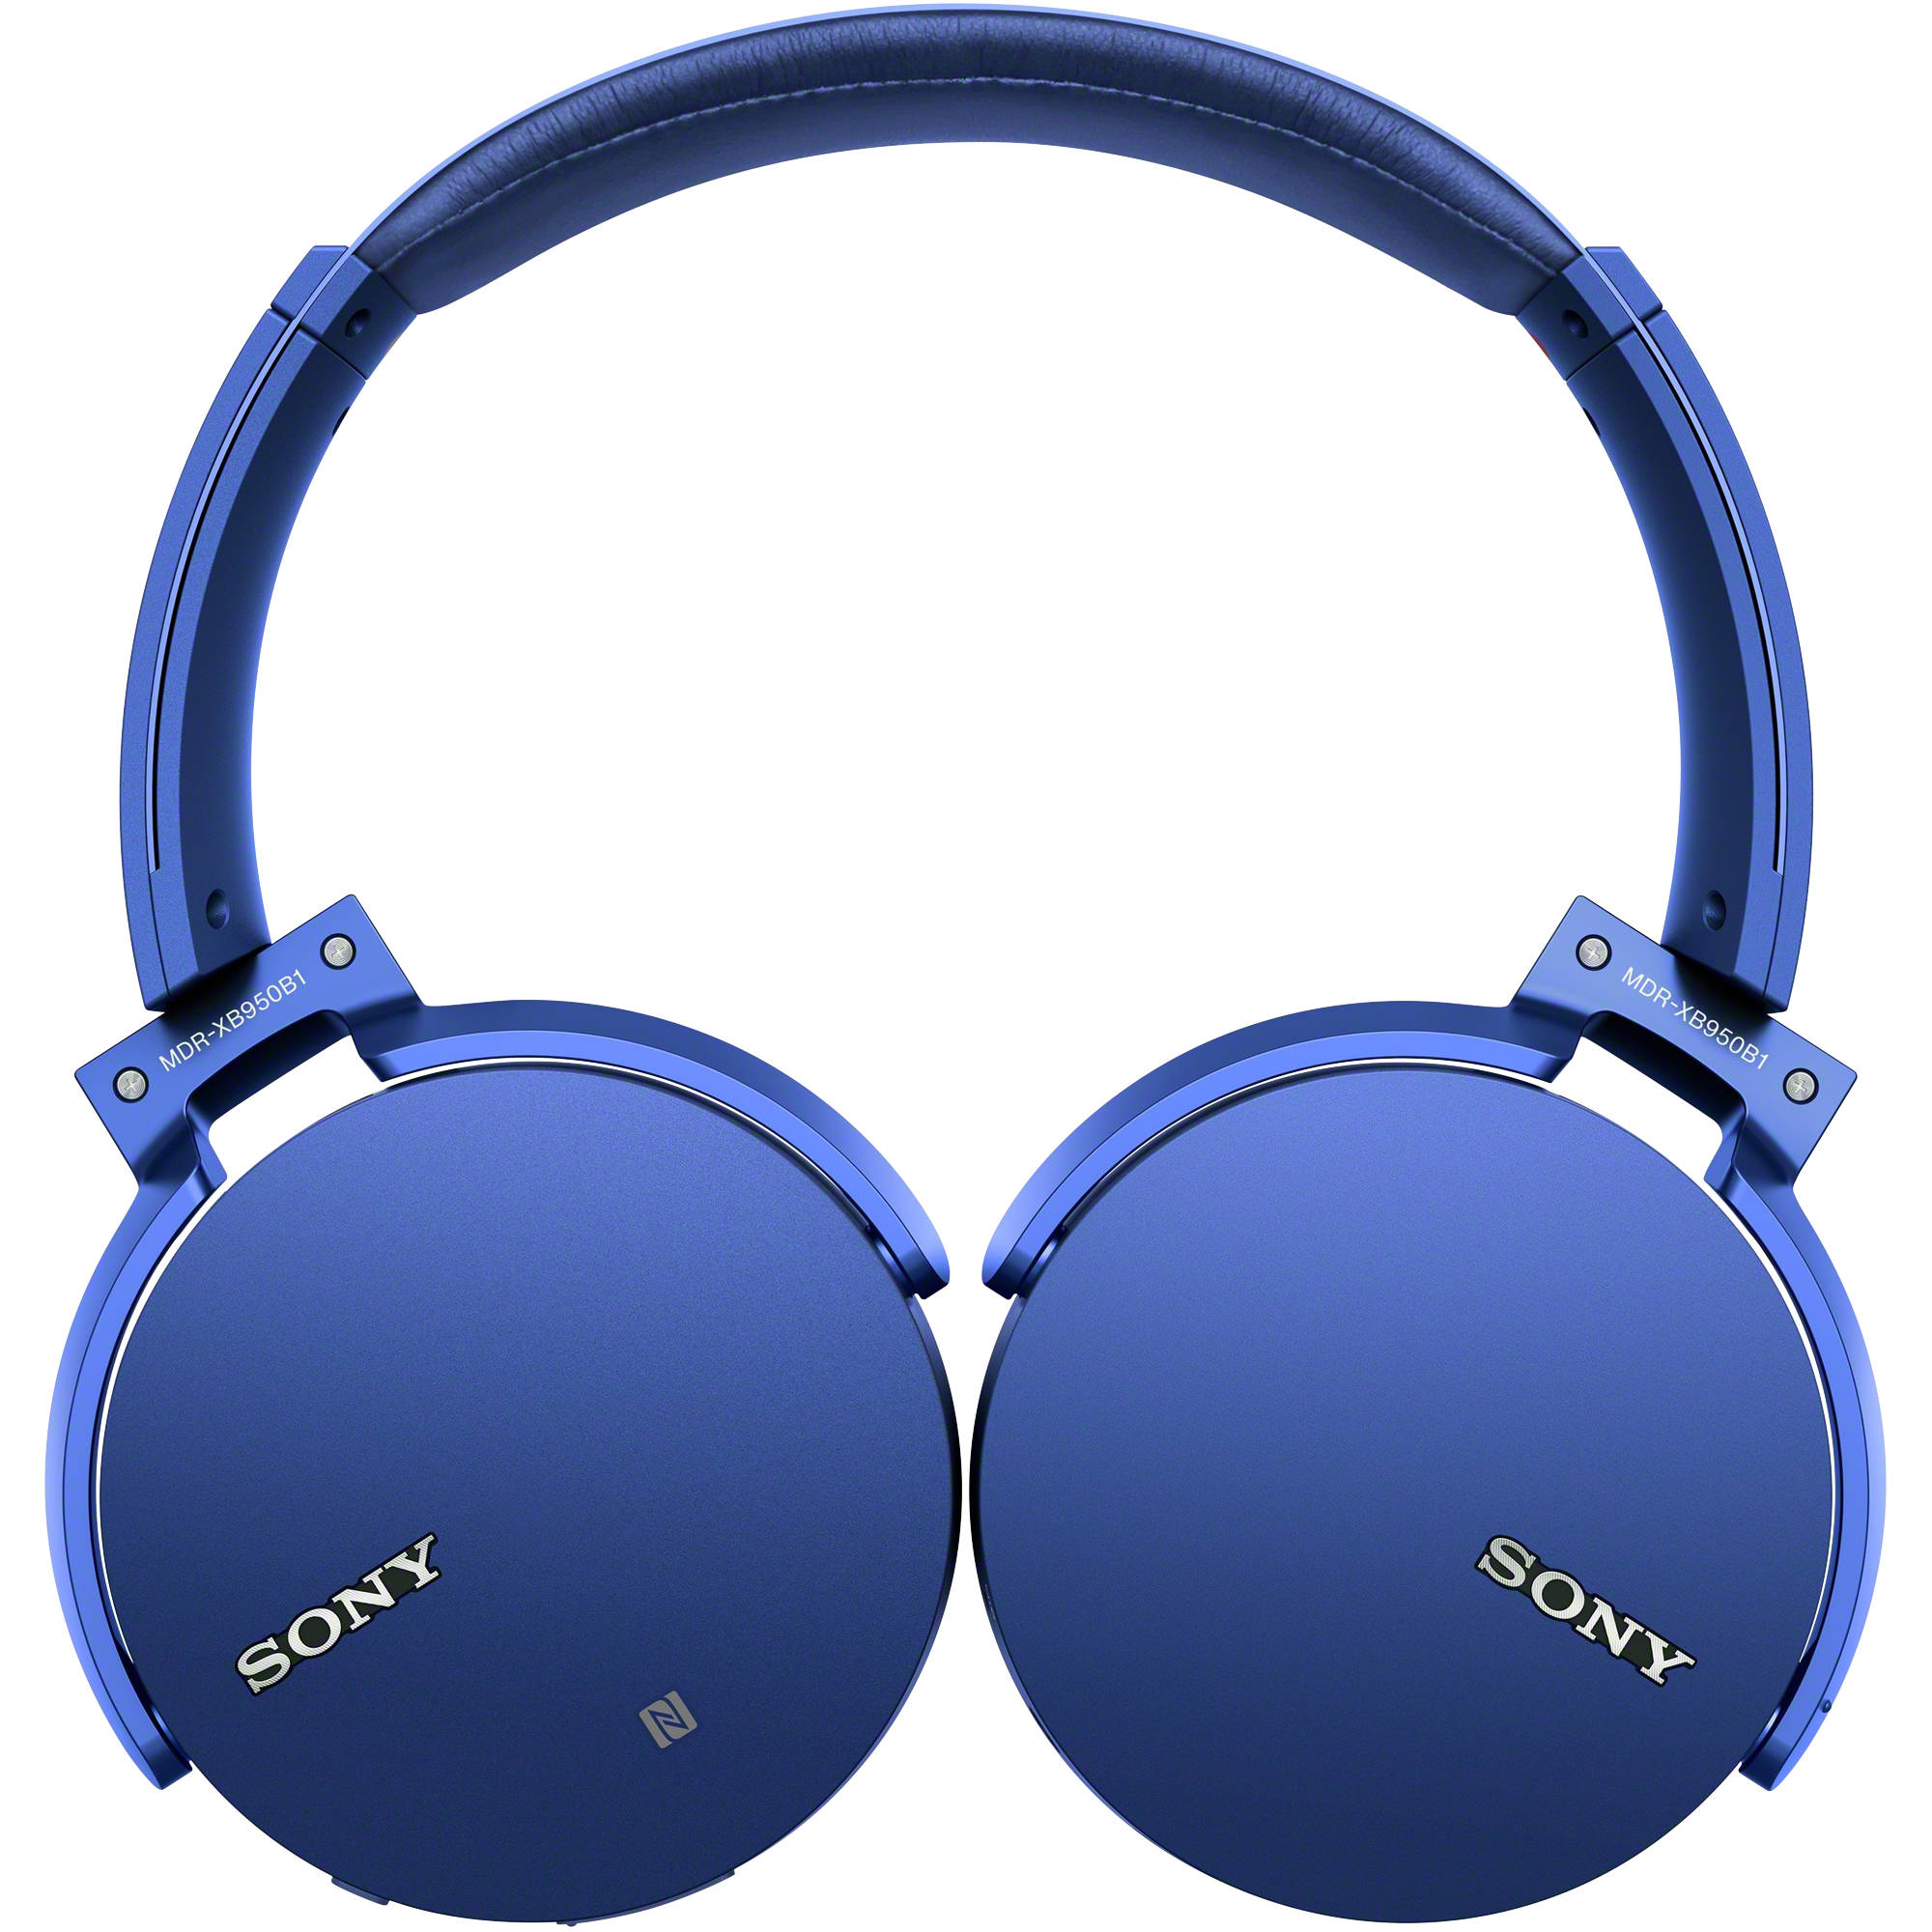 Sony XB950B1 EXTRA BASS Bluetooth Headphones (Blue) MDRXB950B1/L